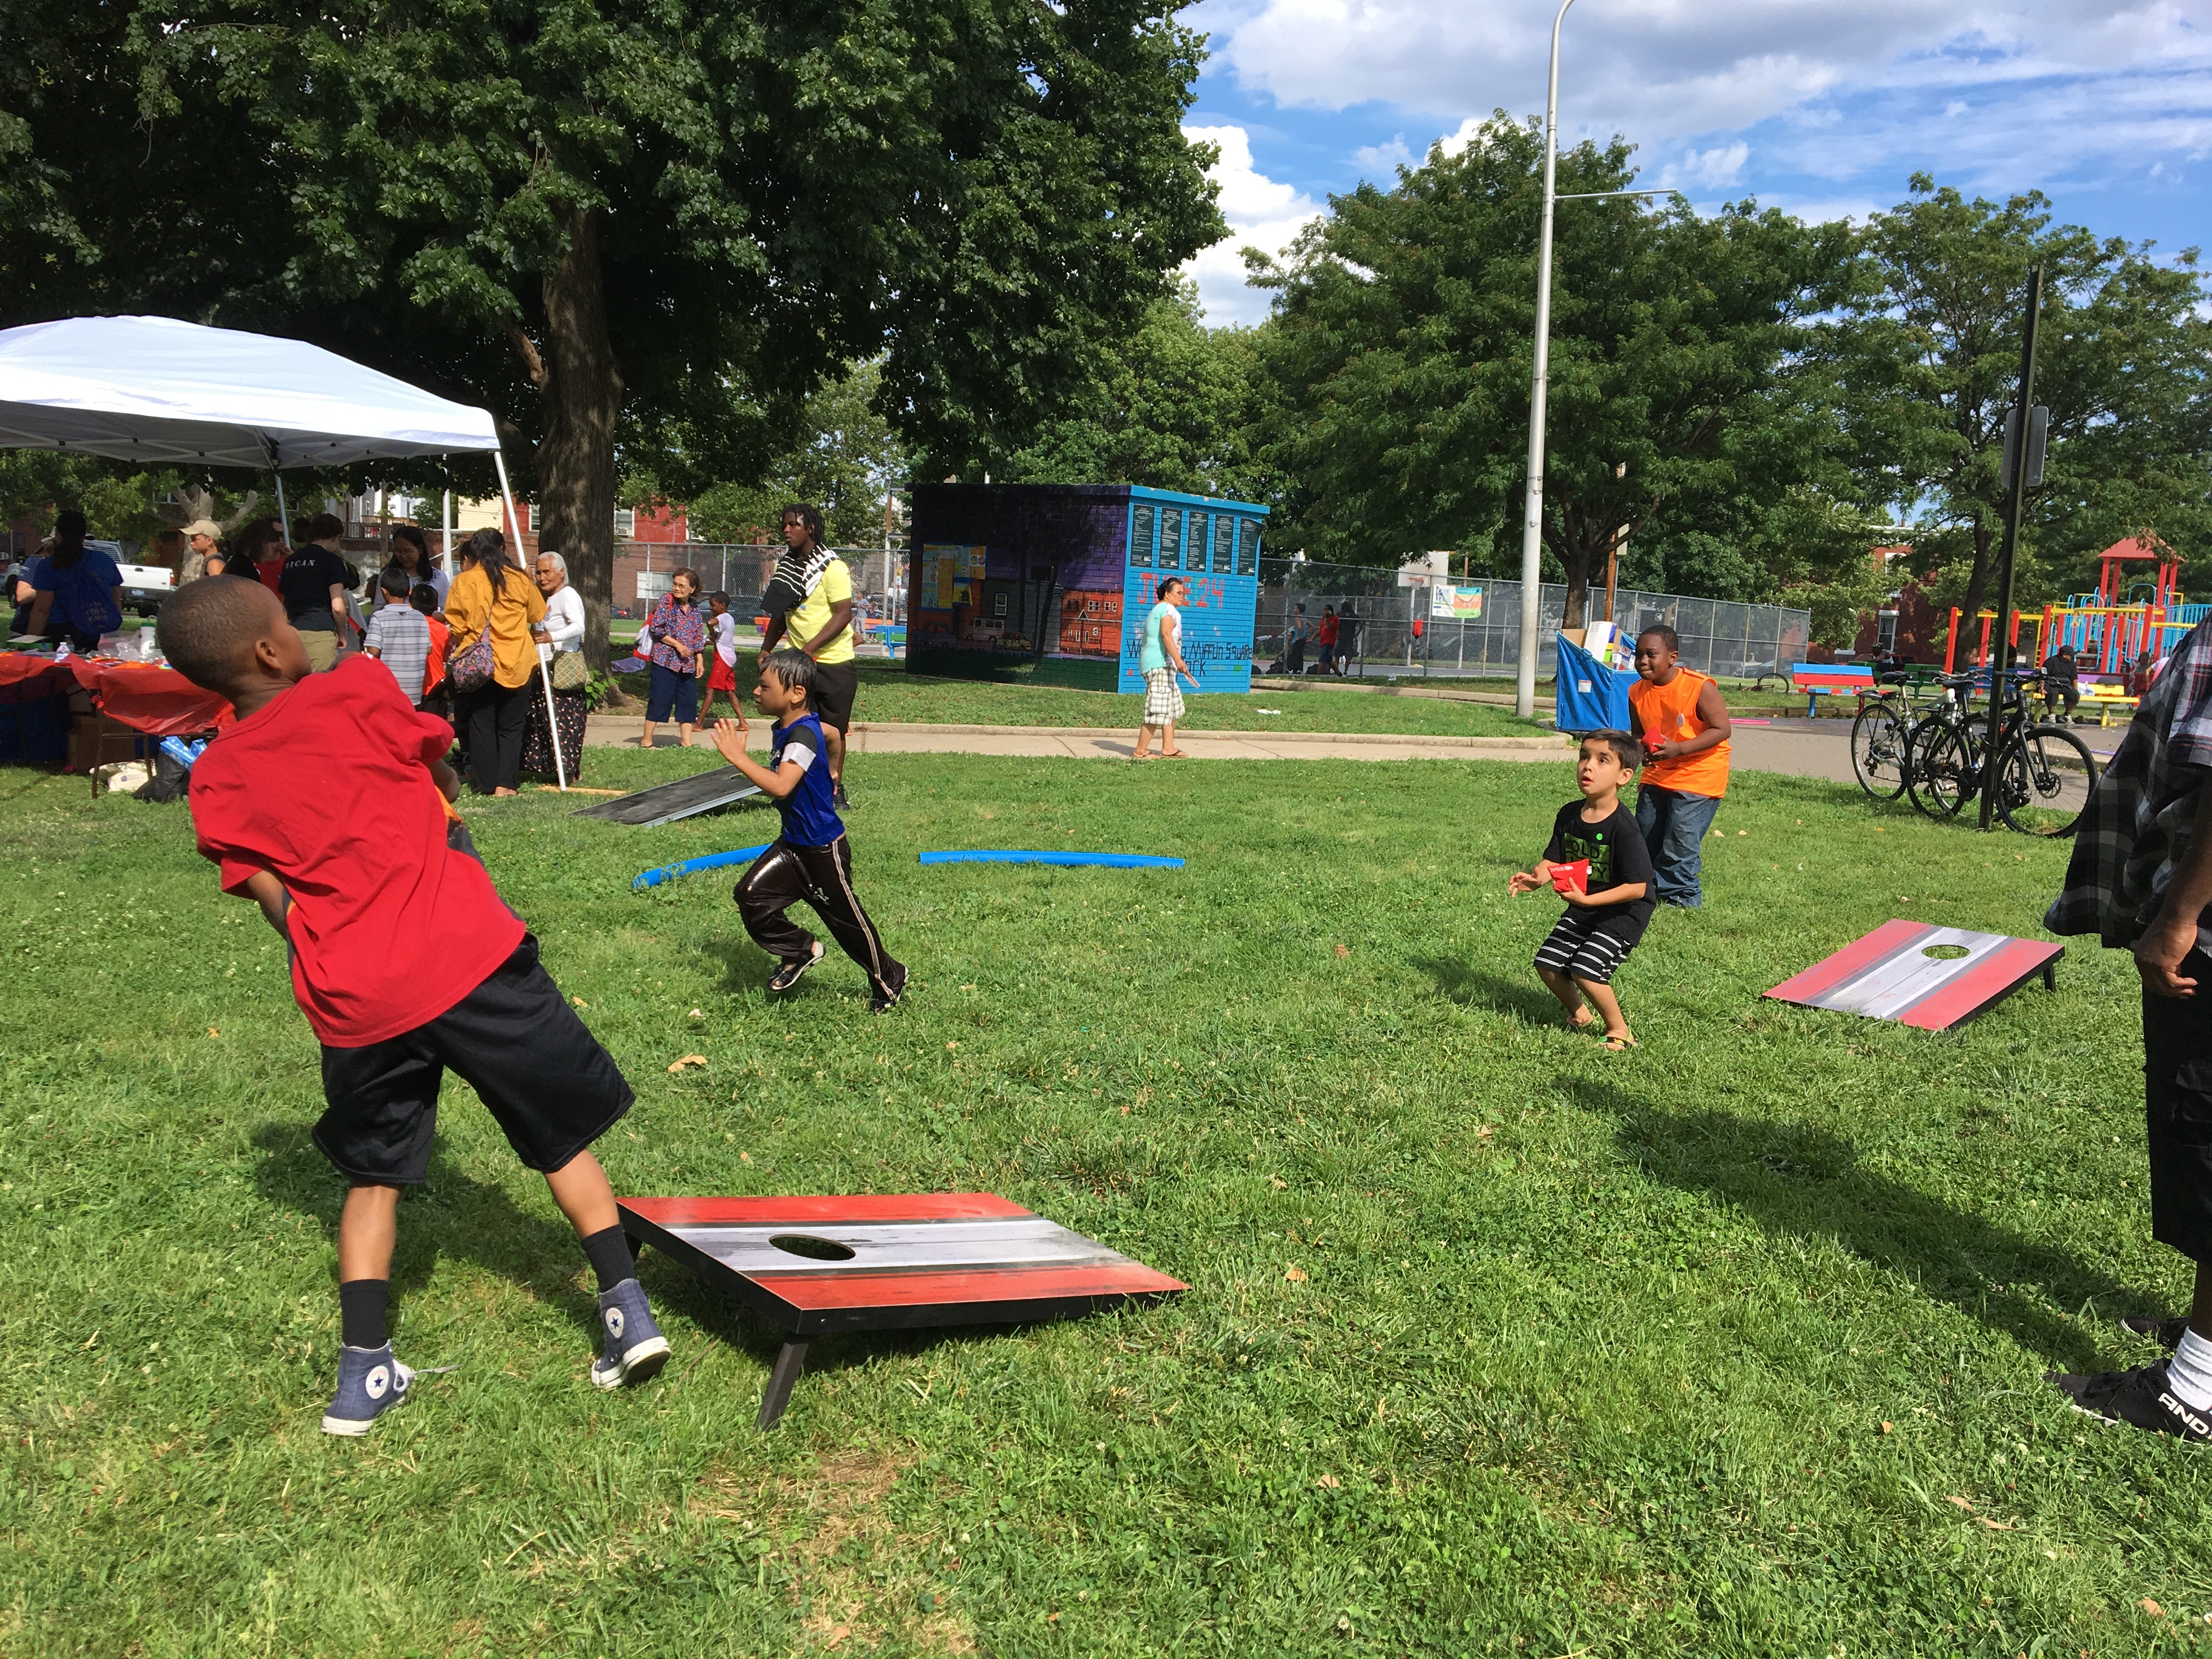 Games in Mifflin Square Park, June 2017 | Julia Bell / PlanPhilly